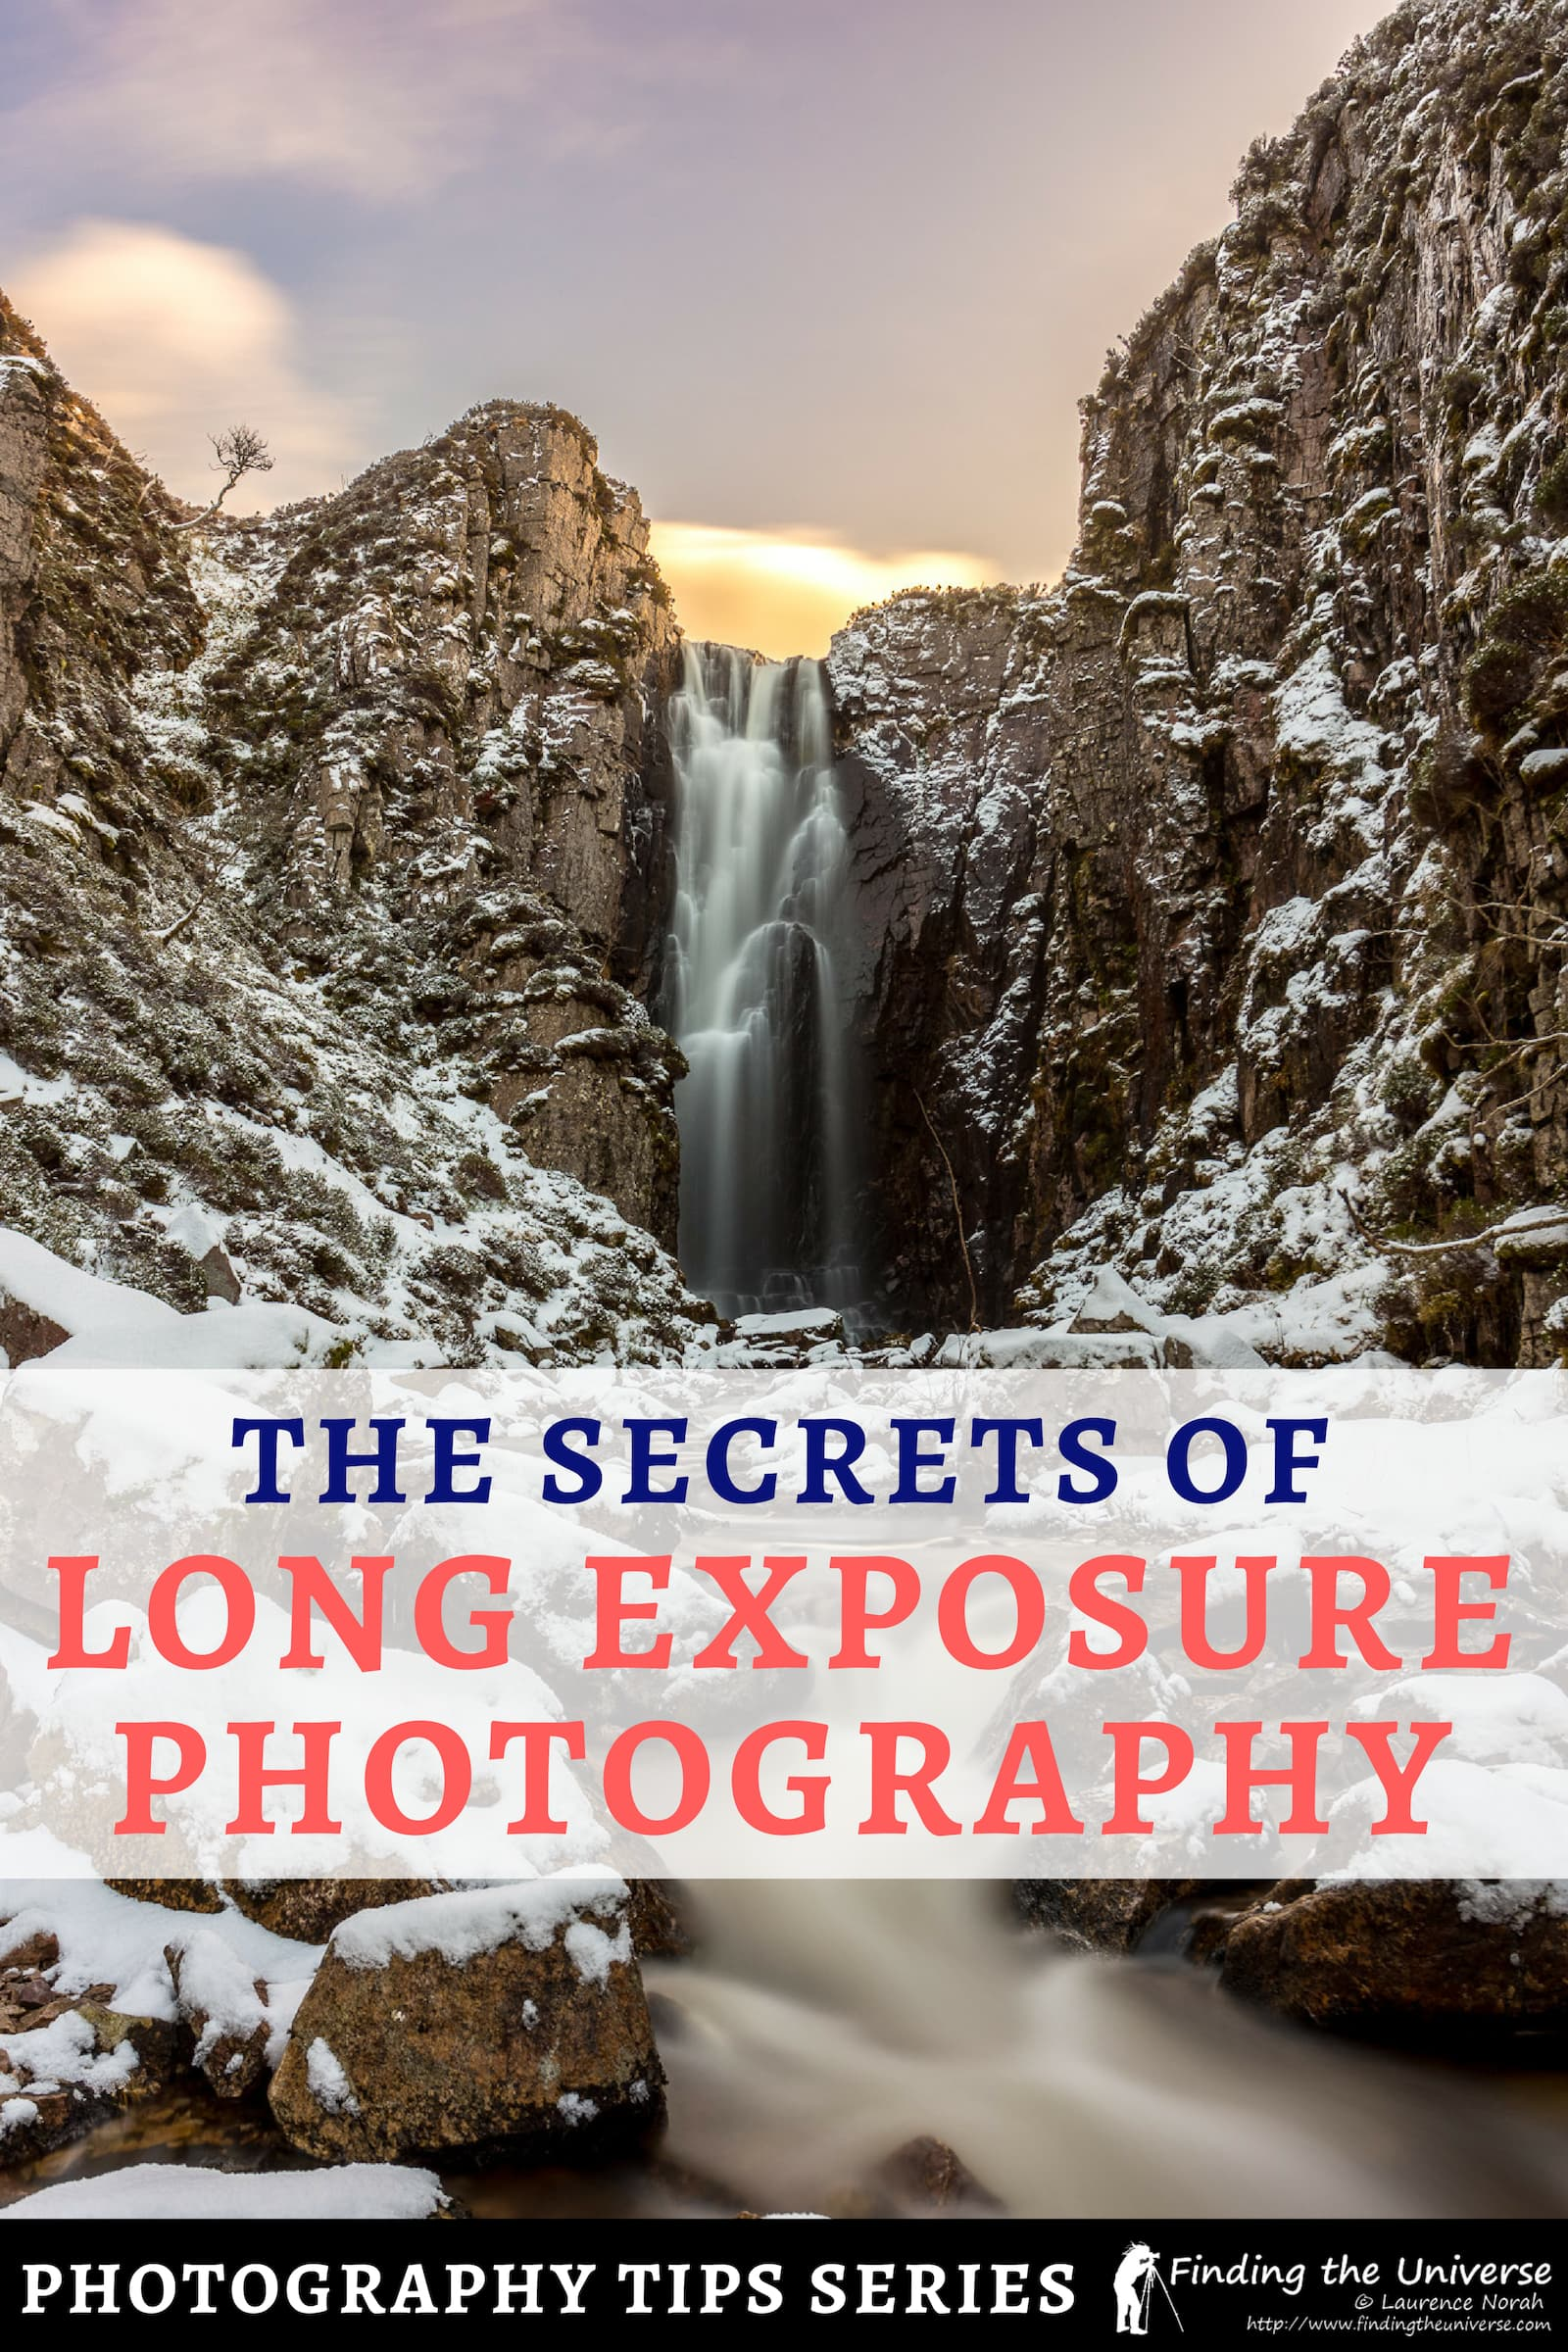 A detailed guide to long exposure photography - what it is, what equipment you need to take long exposure photos, camera settings, and more!